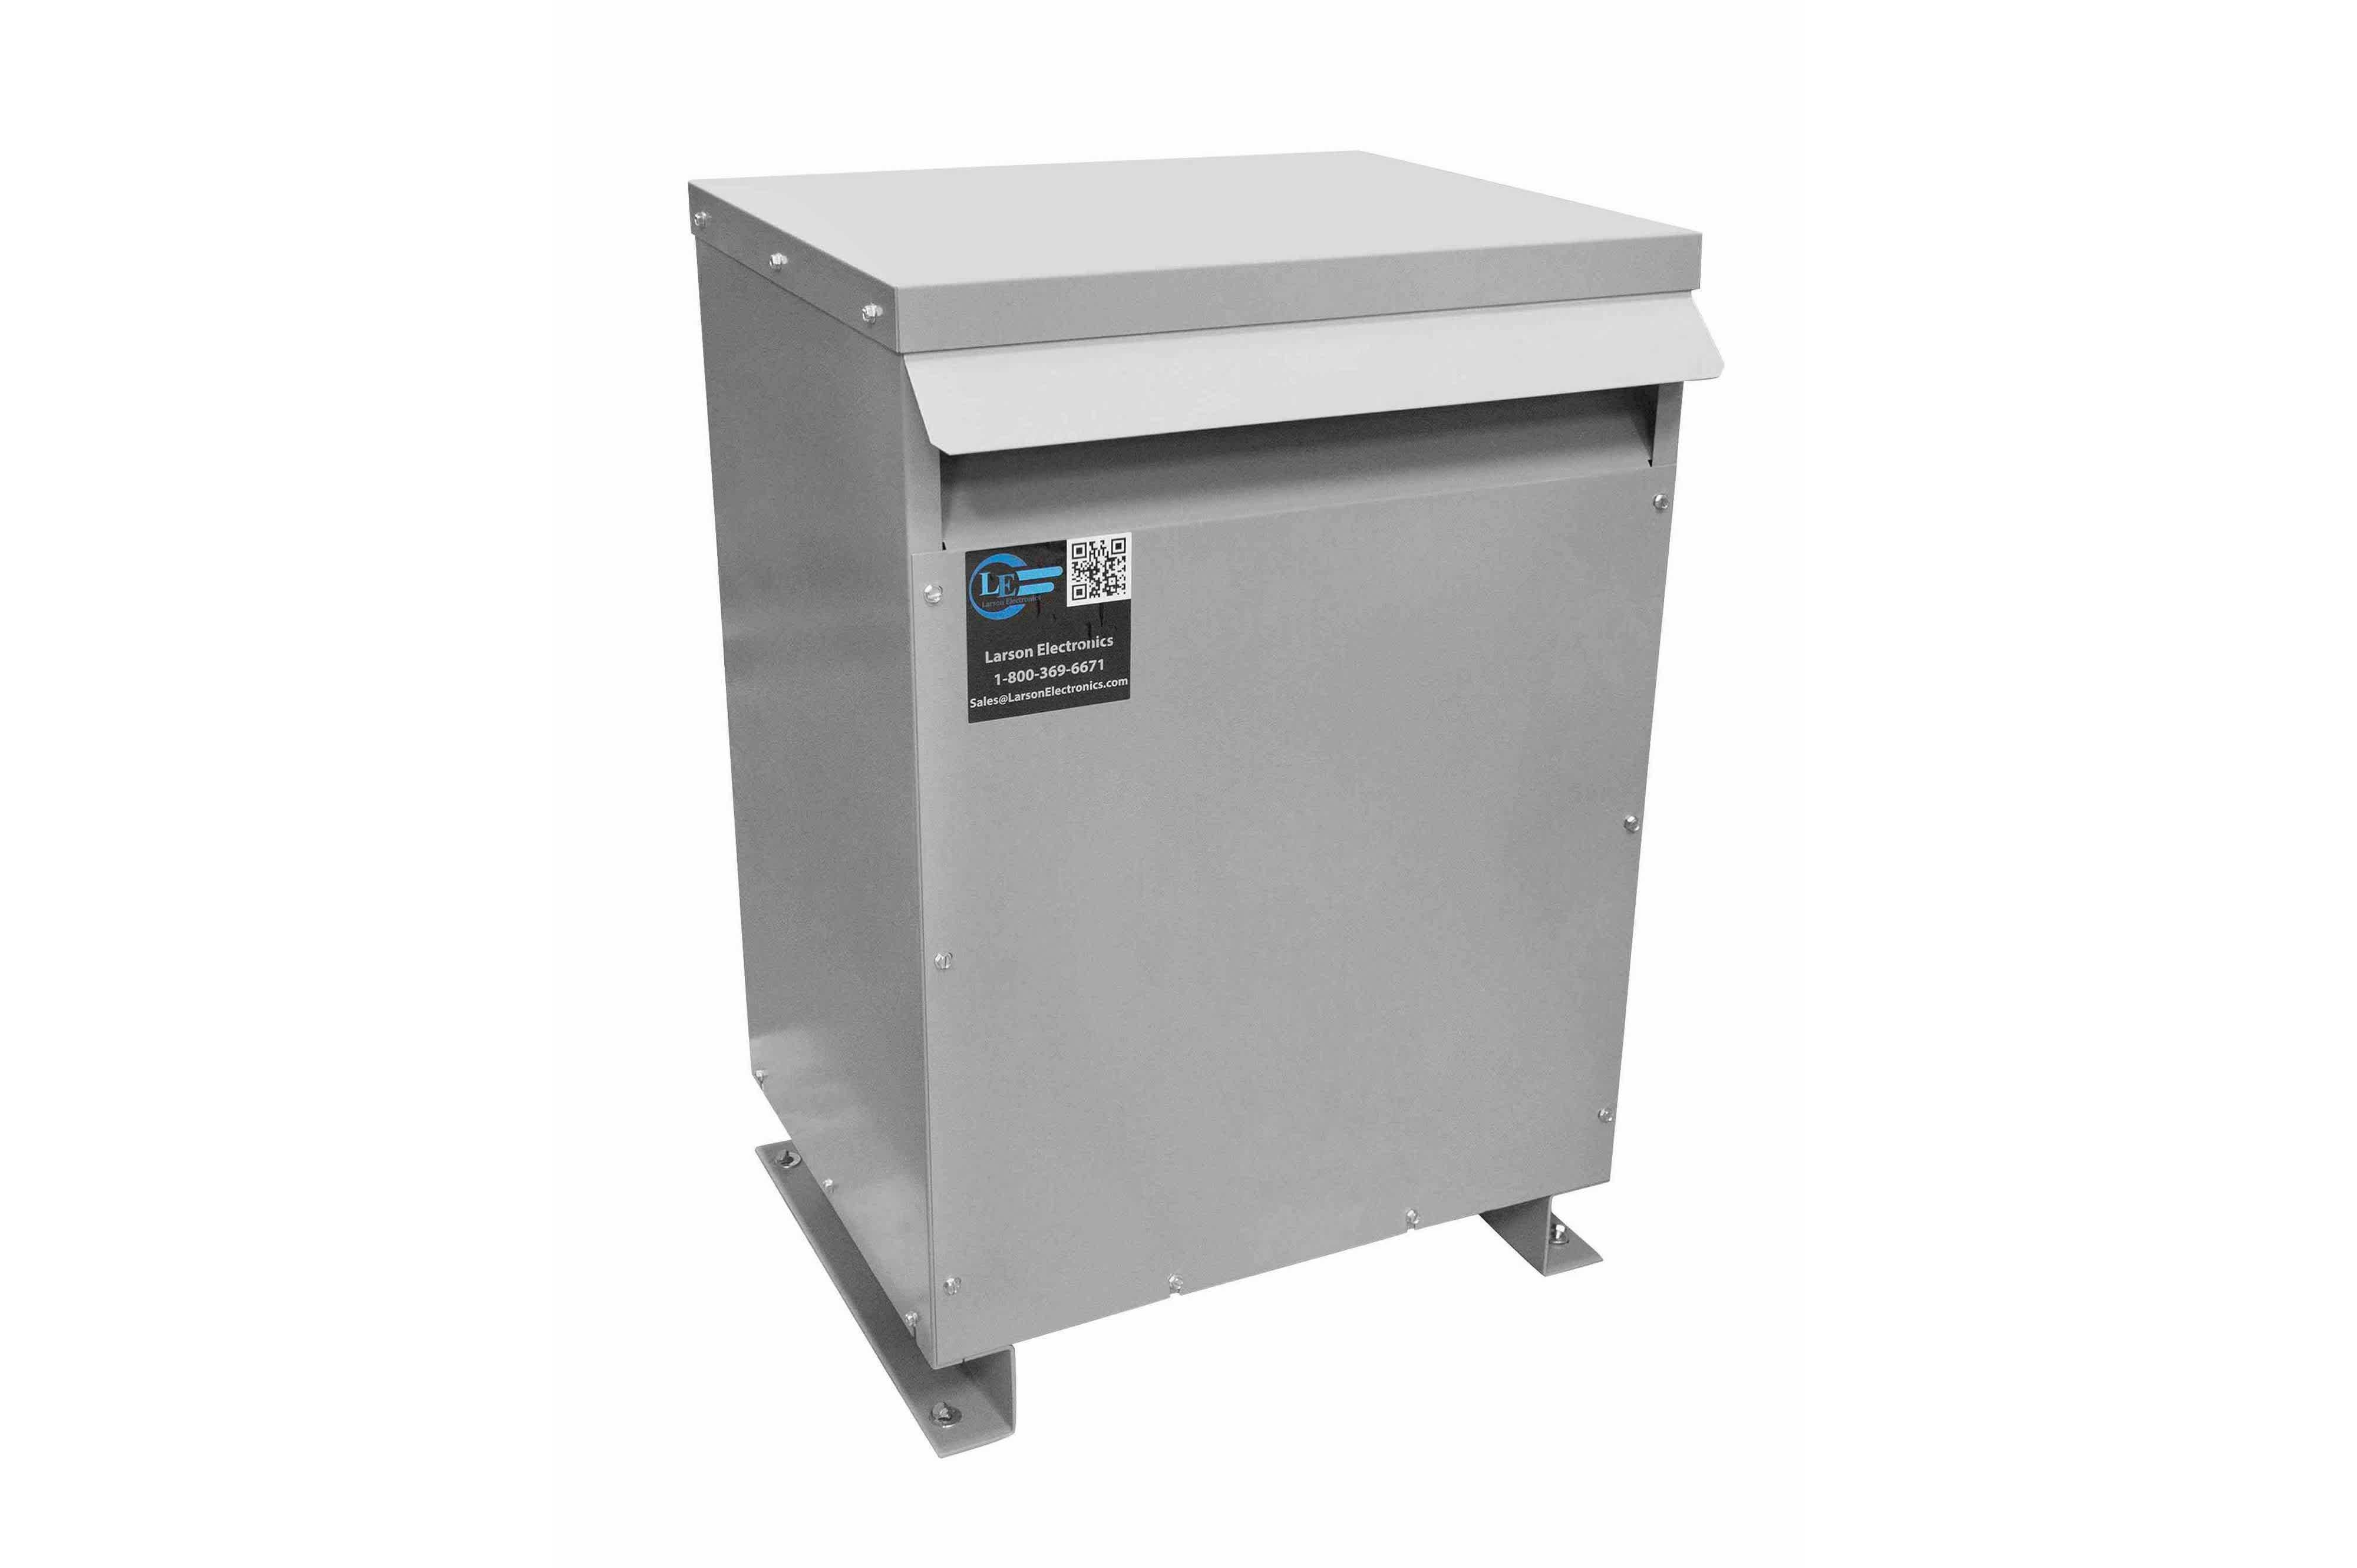 38 kVA 3PH DOE Transformer, 575V Delta Primary, 208Y/120 Wye-N Secondary, N3R, Ventilated, 60 Hz